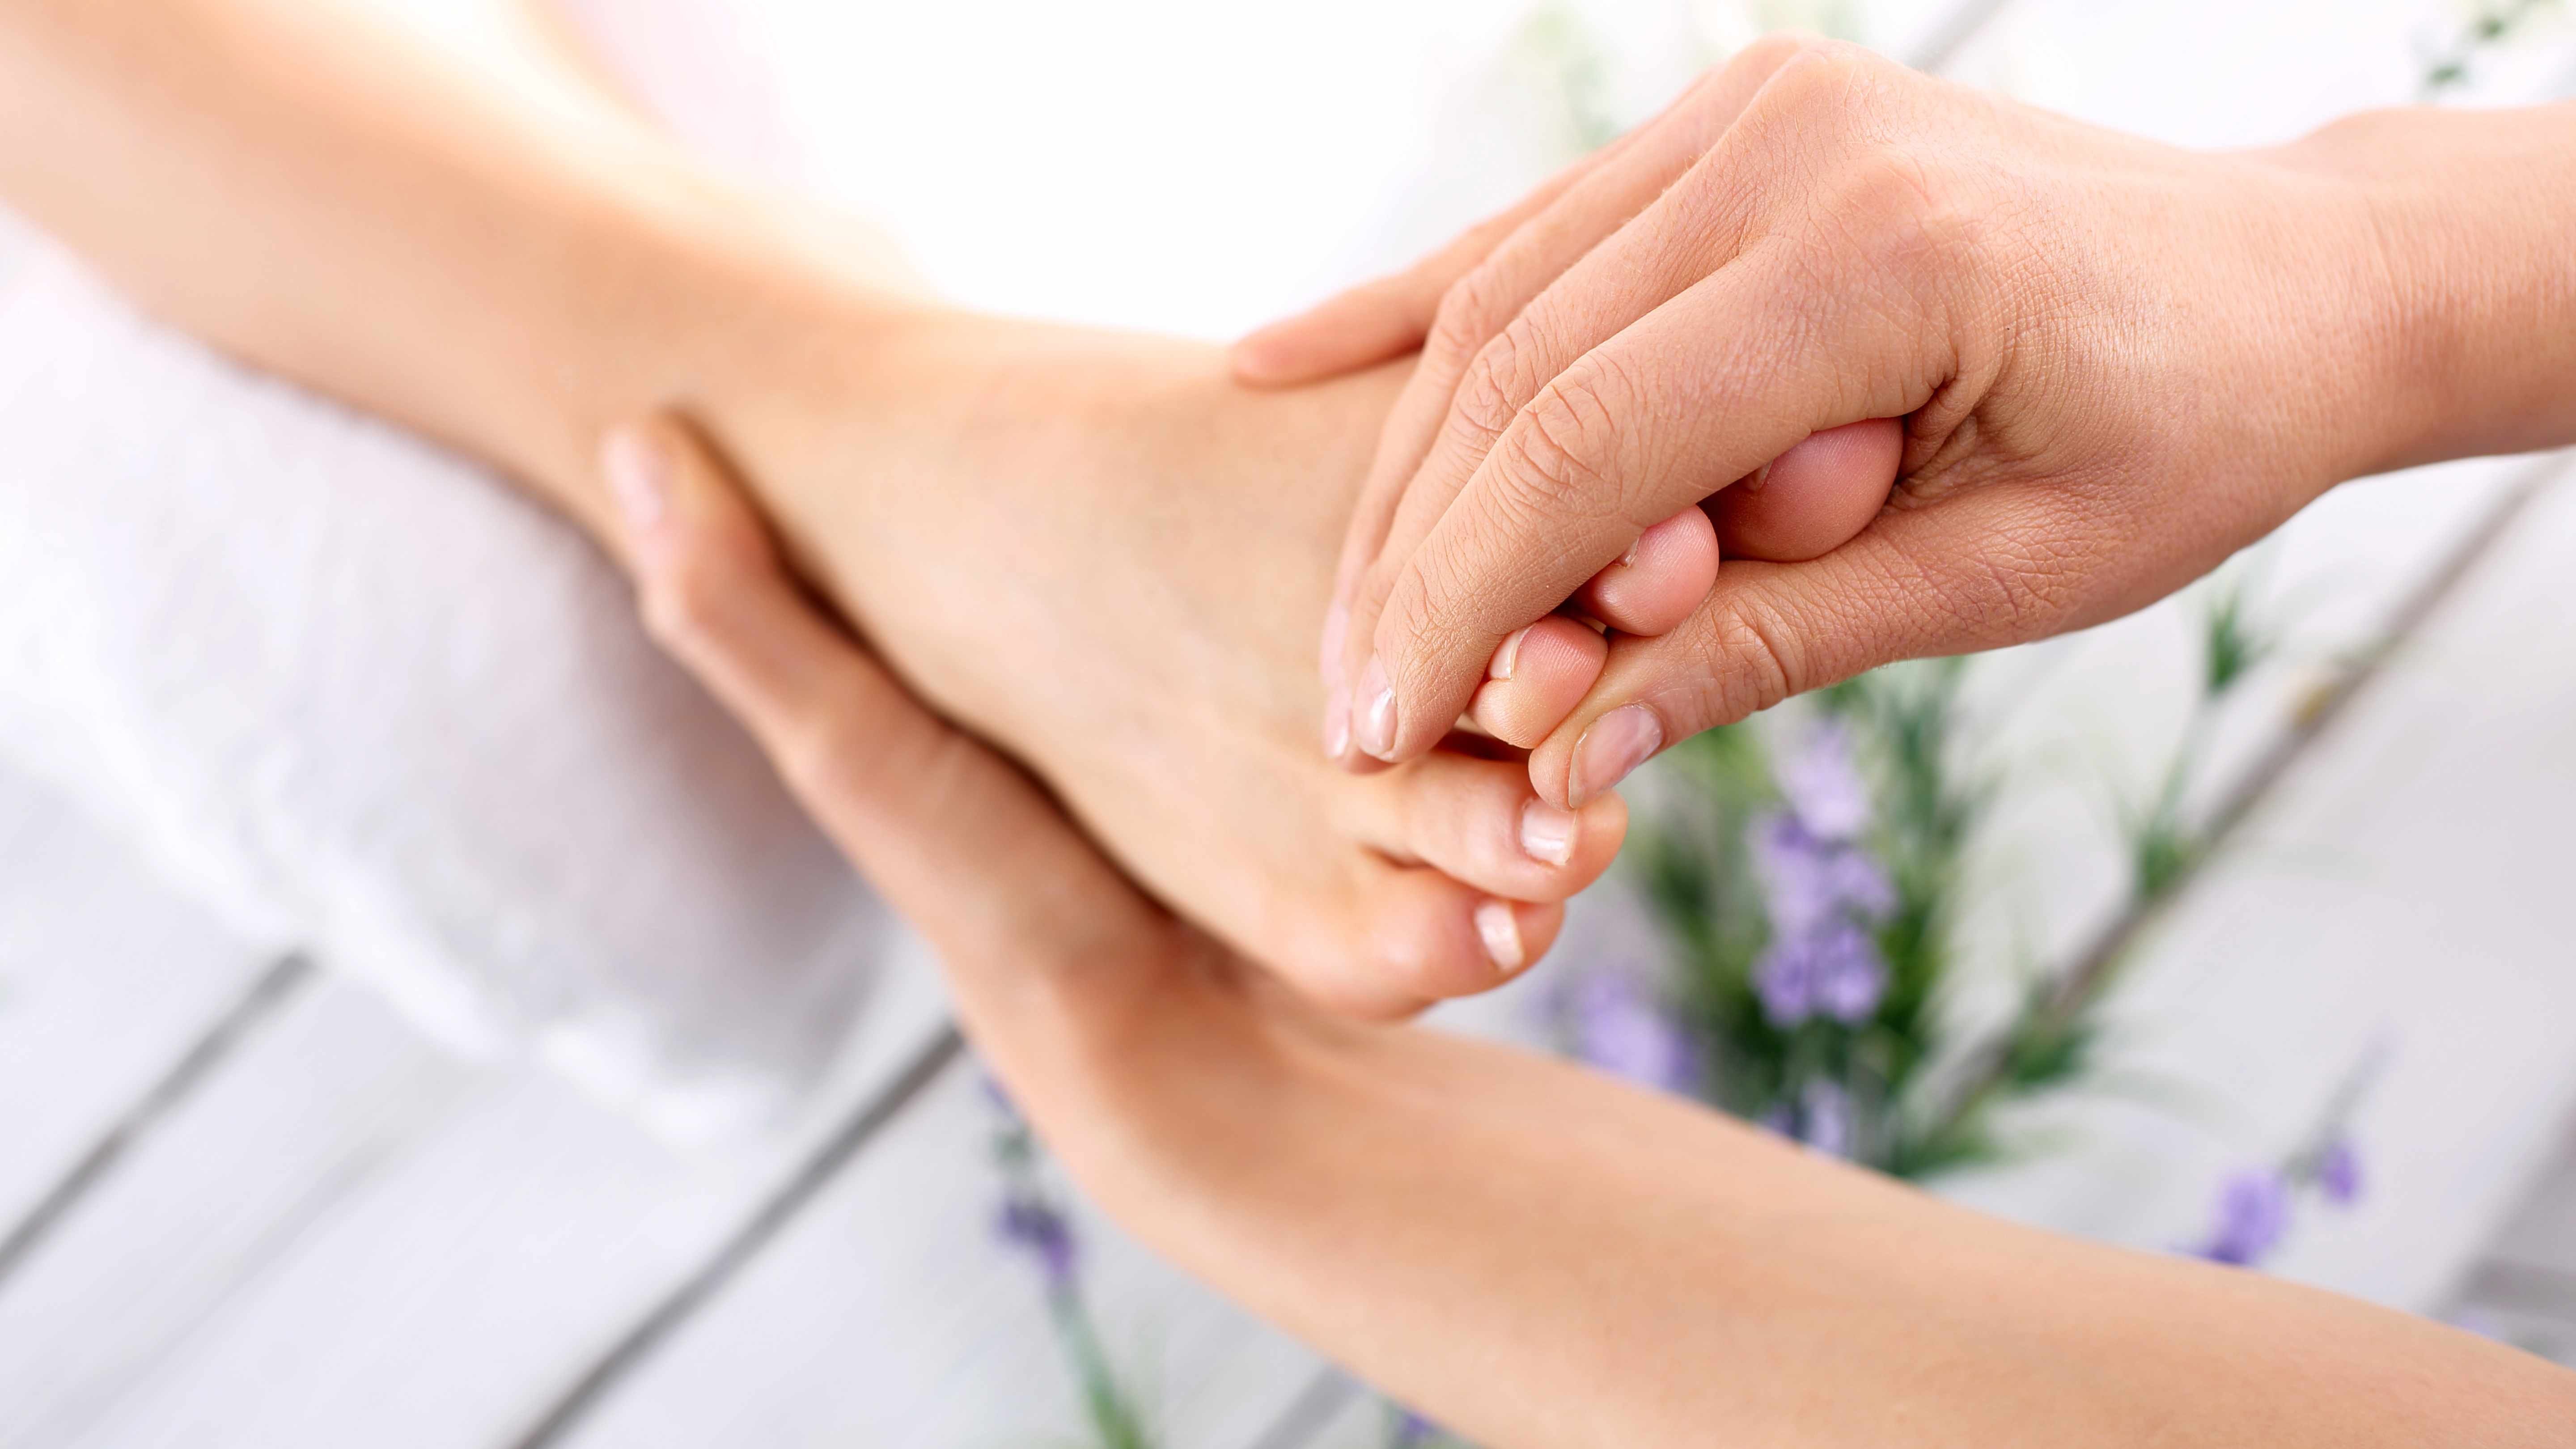 two hands grasping another person's foot at the heel and toes, performing massage or reflexology